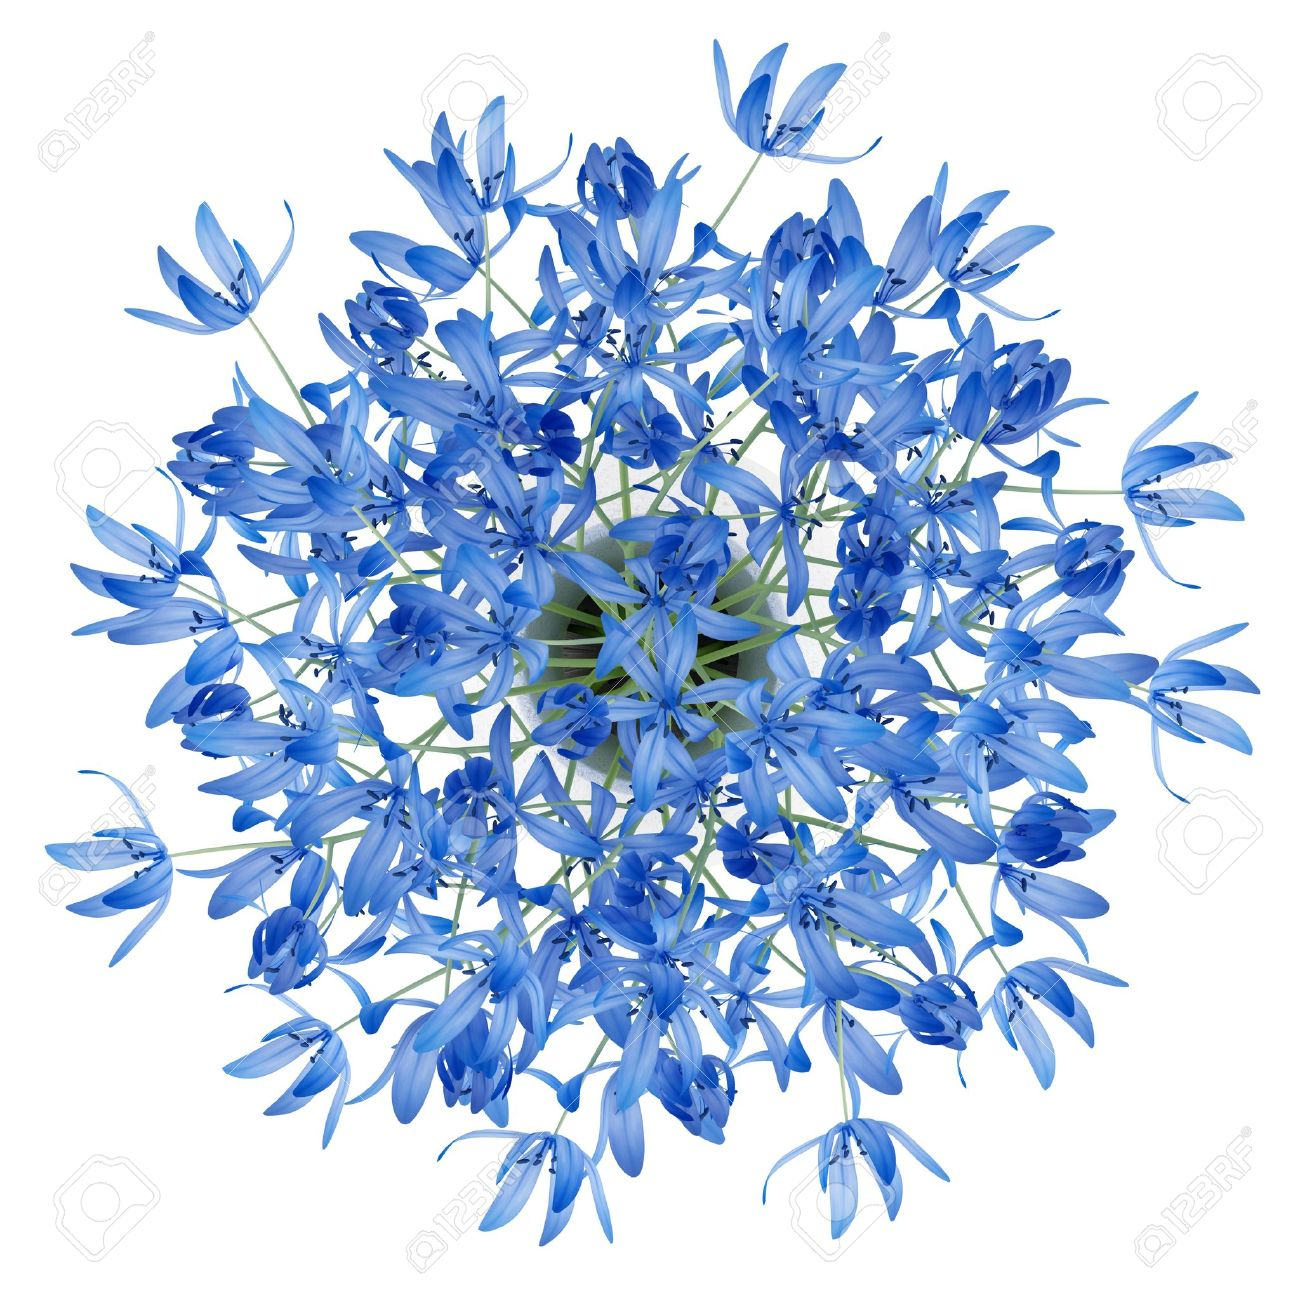 Top View Of Blue Flowers In Vase Isolated On White Background Stock